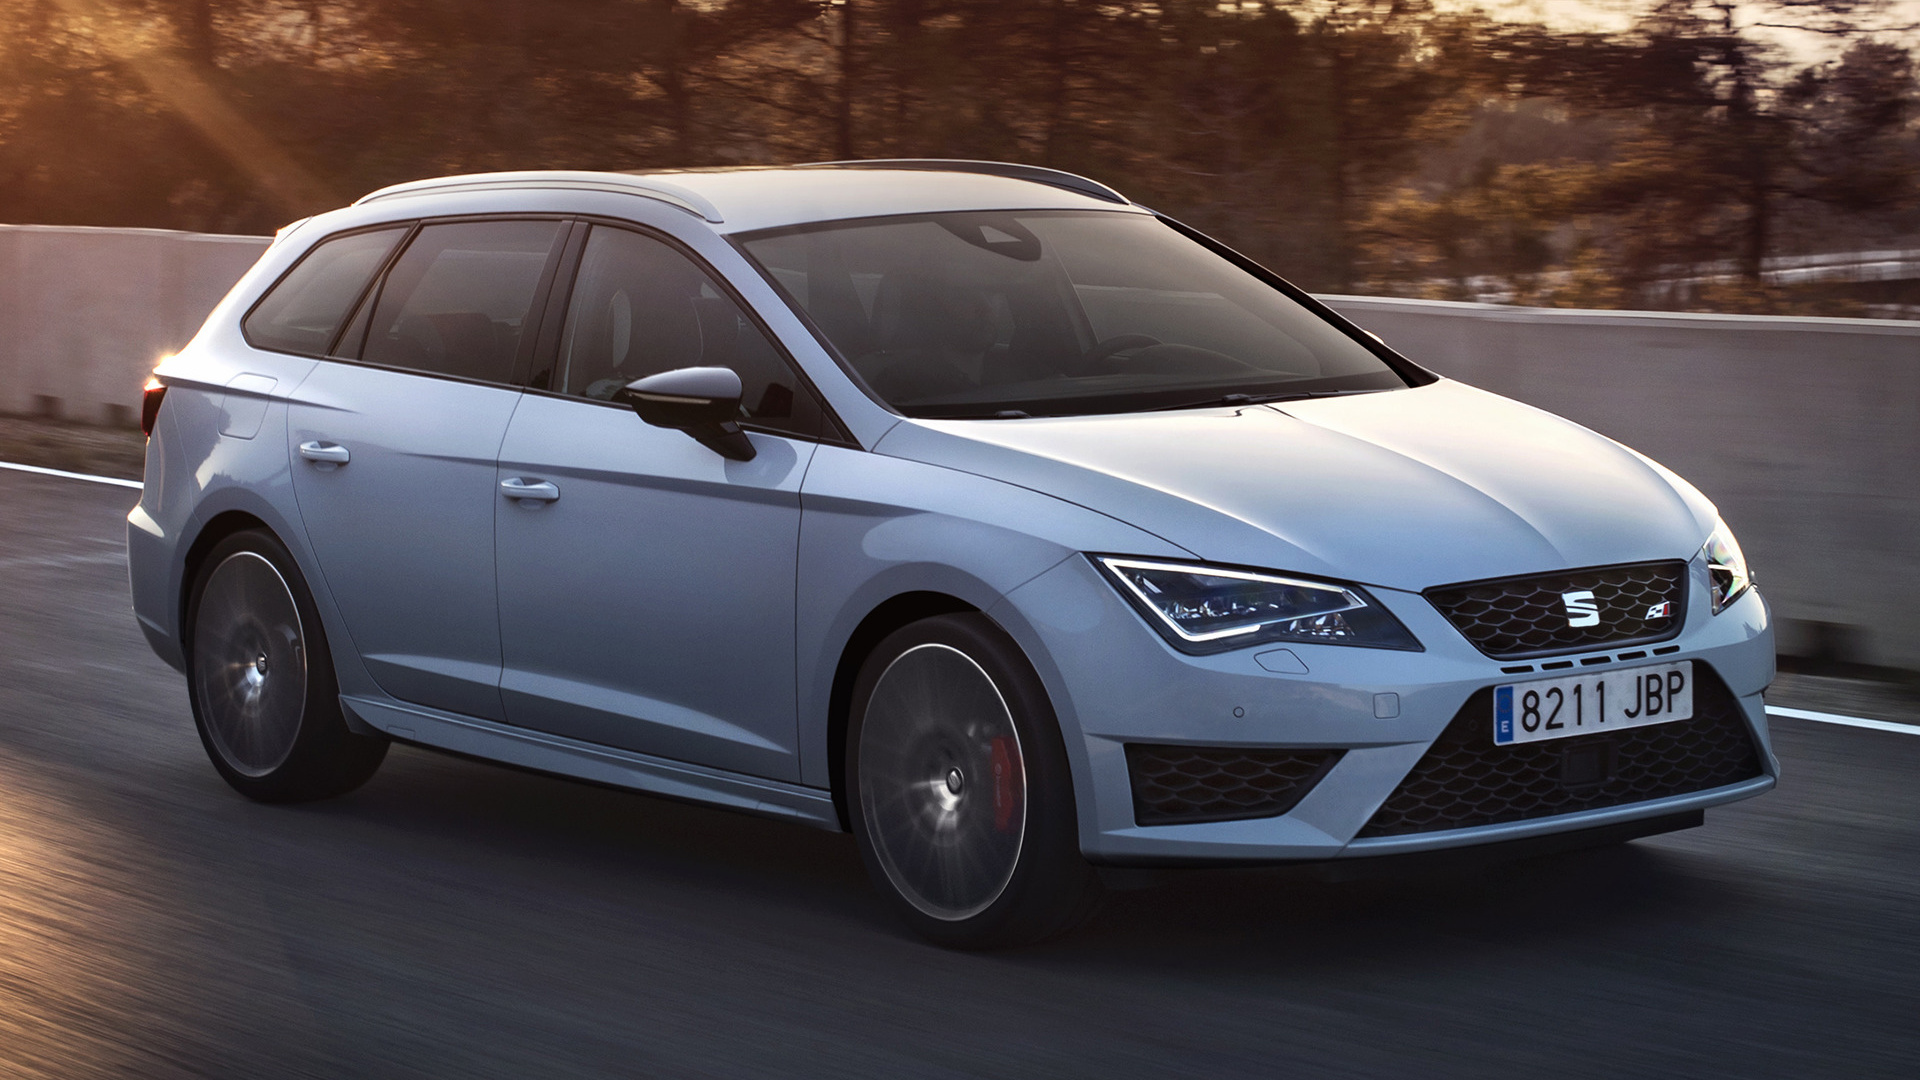 Seat Leon ST Cupra 280 2015 Wallpapers and HD Images